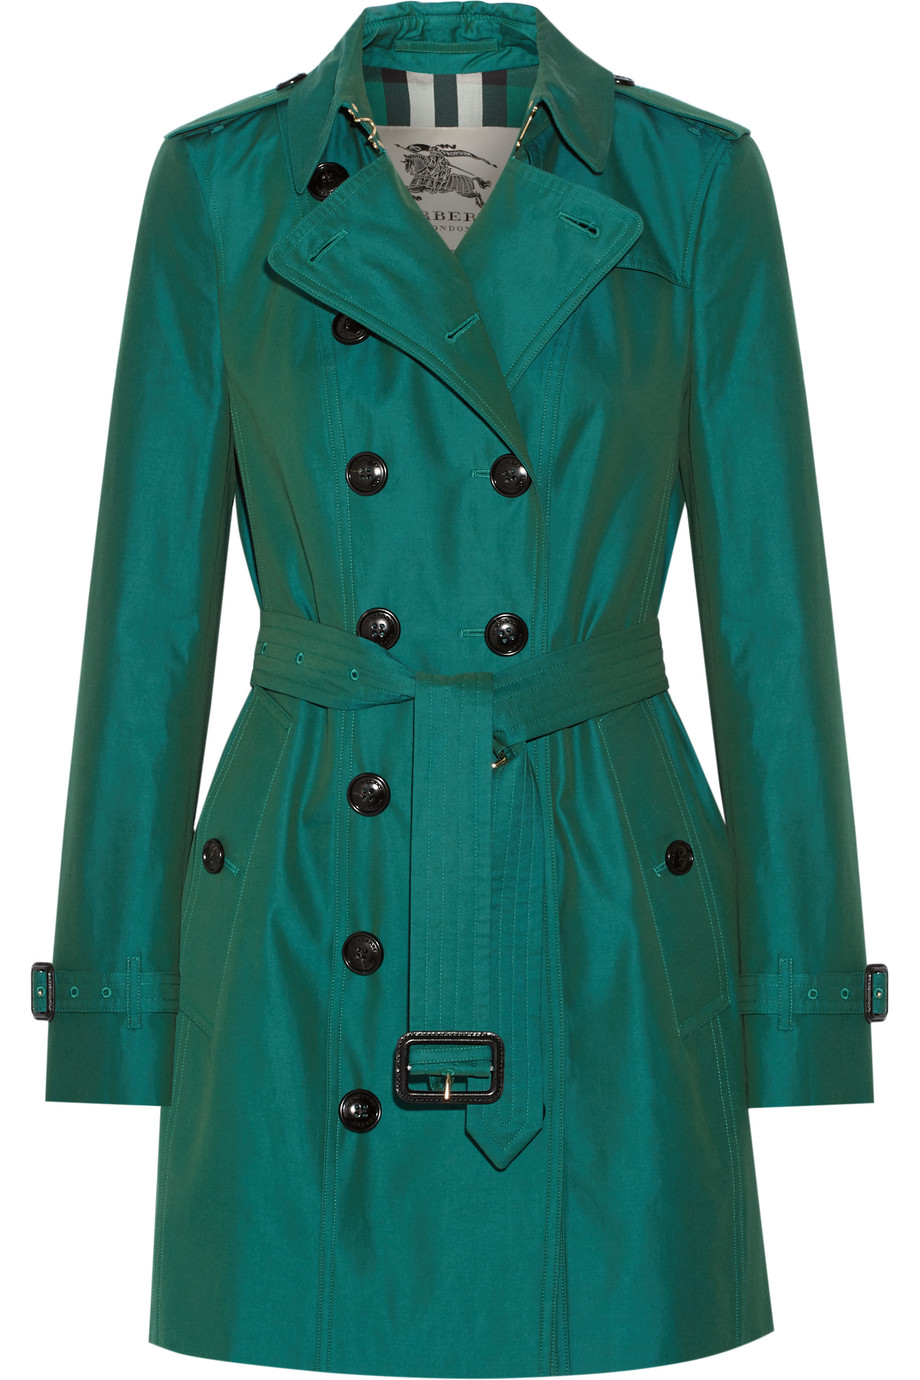 Burberry London The Sandringham Mid Cotton-Gabardine Trench Coat, Emerald, Women's, Size: 36